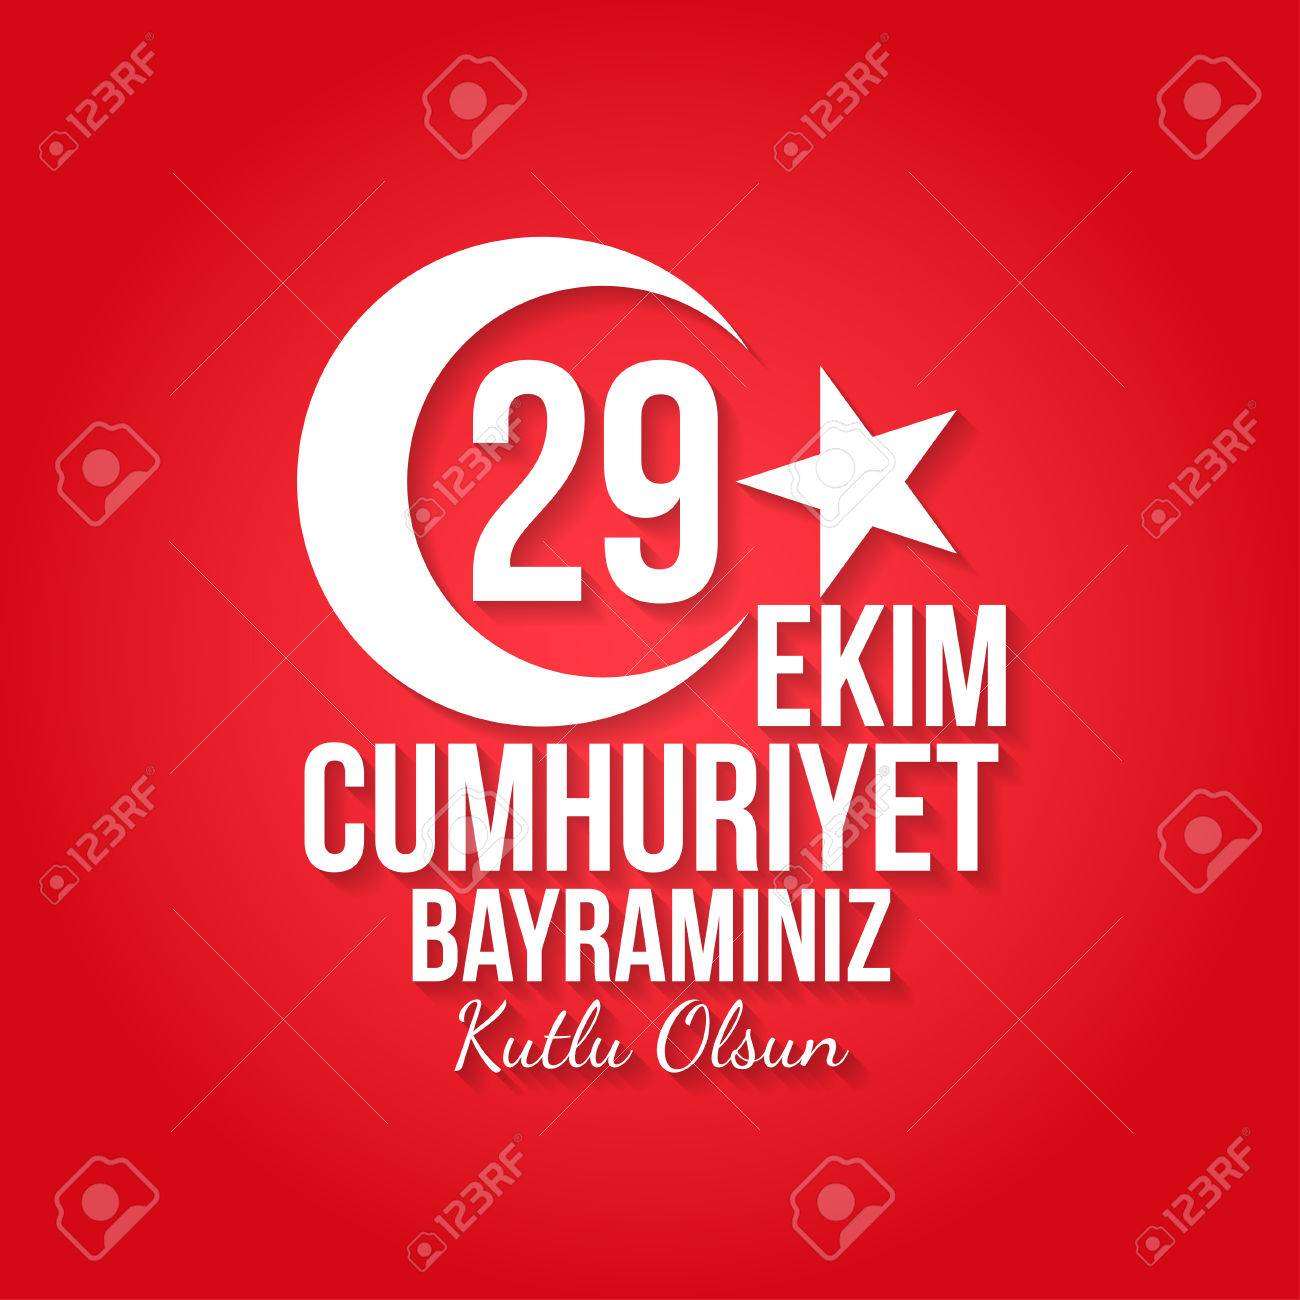 Republic Day Turkey Vector Illustration For Greeting Card